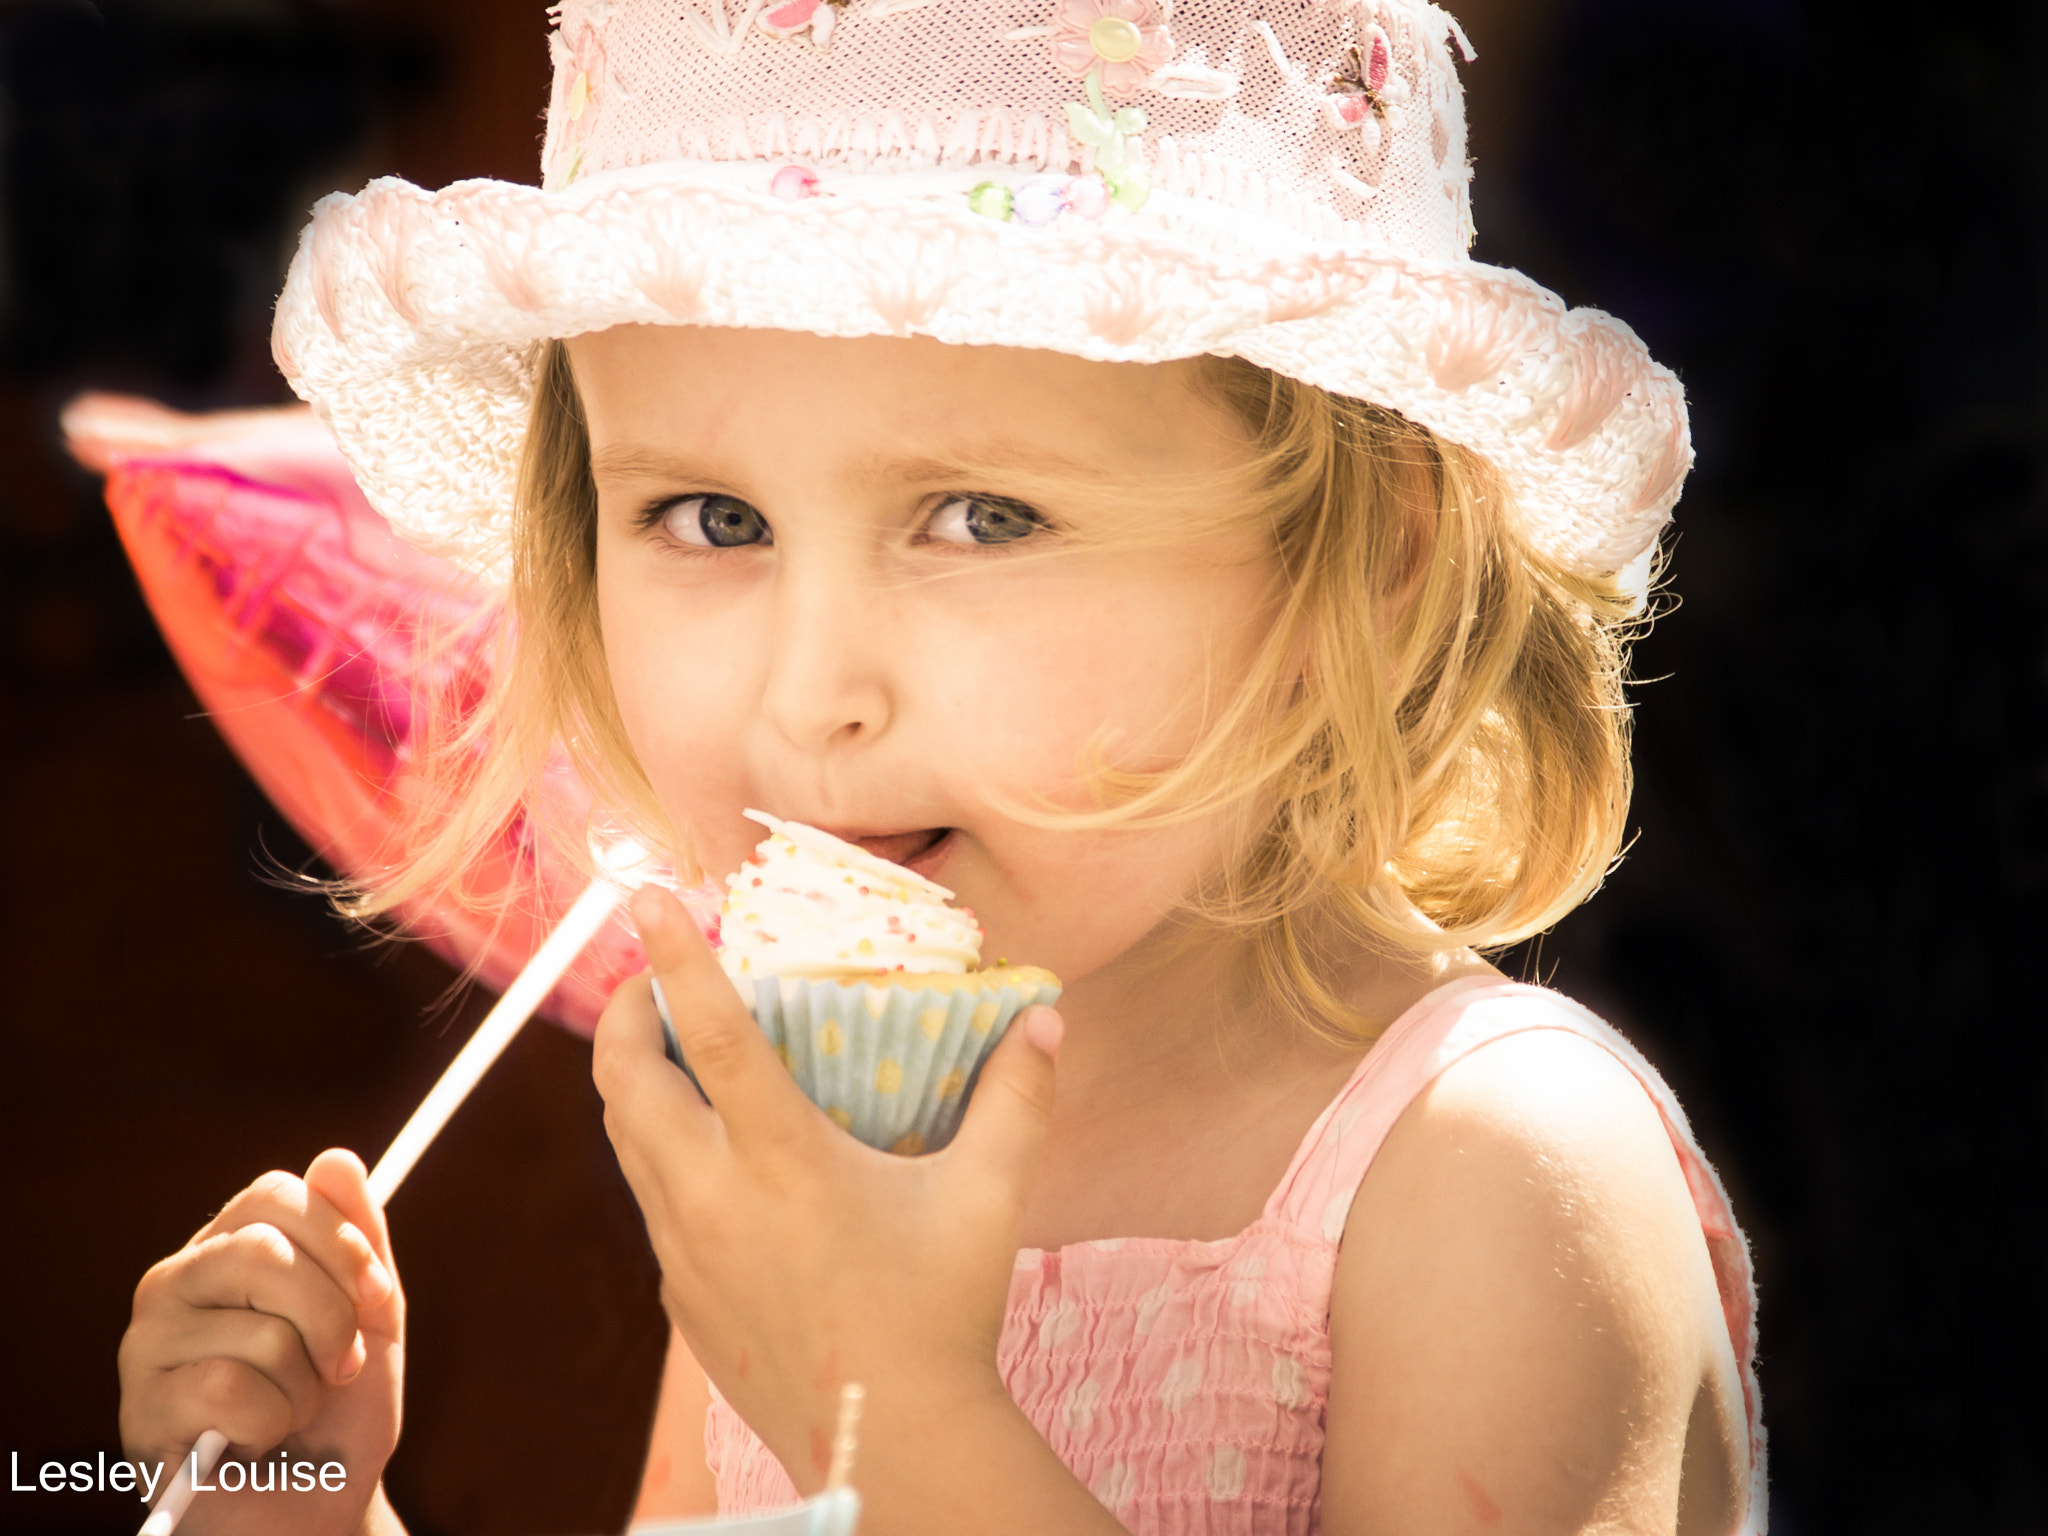 Photograph cupcake by Lesley Louise on 500px